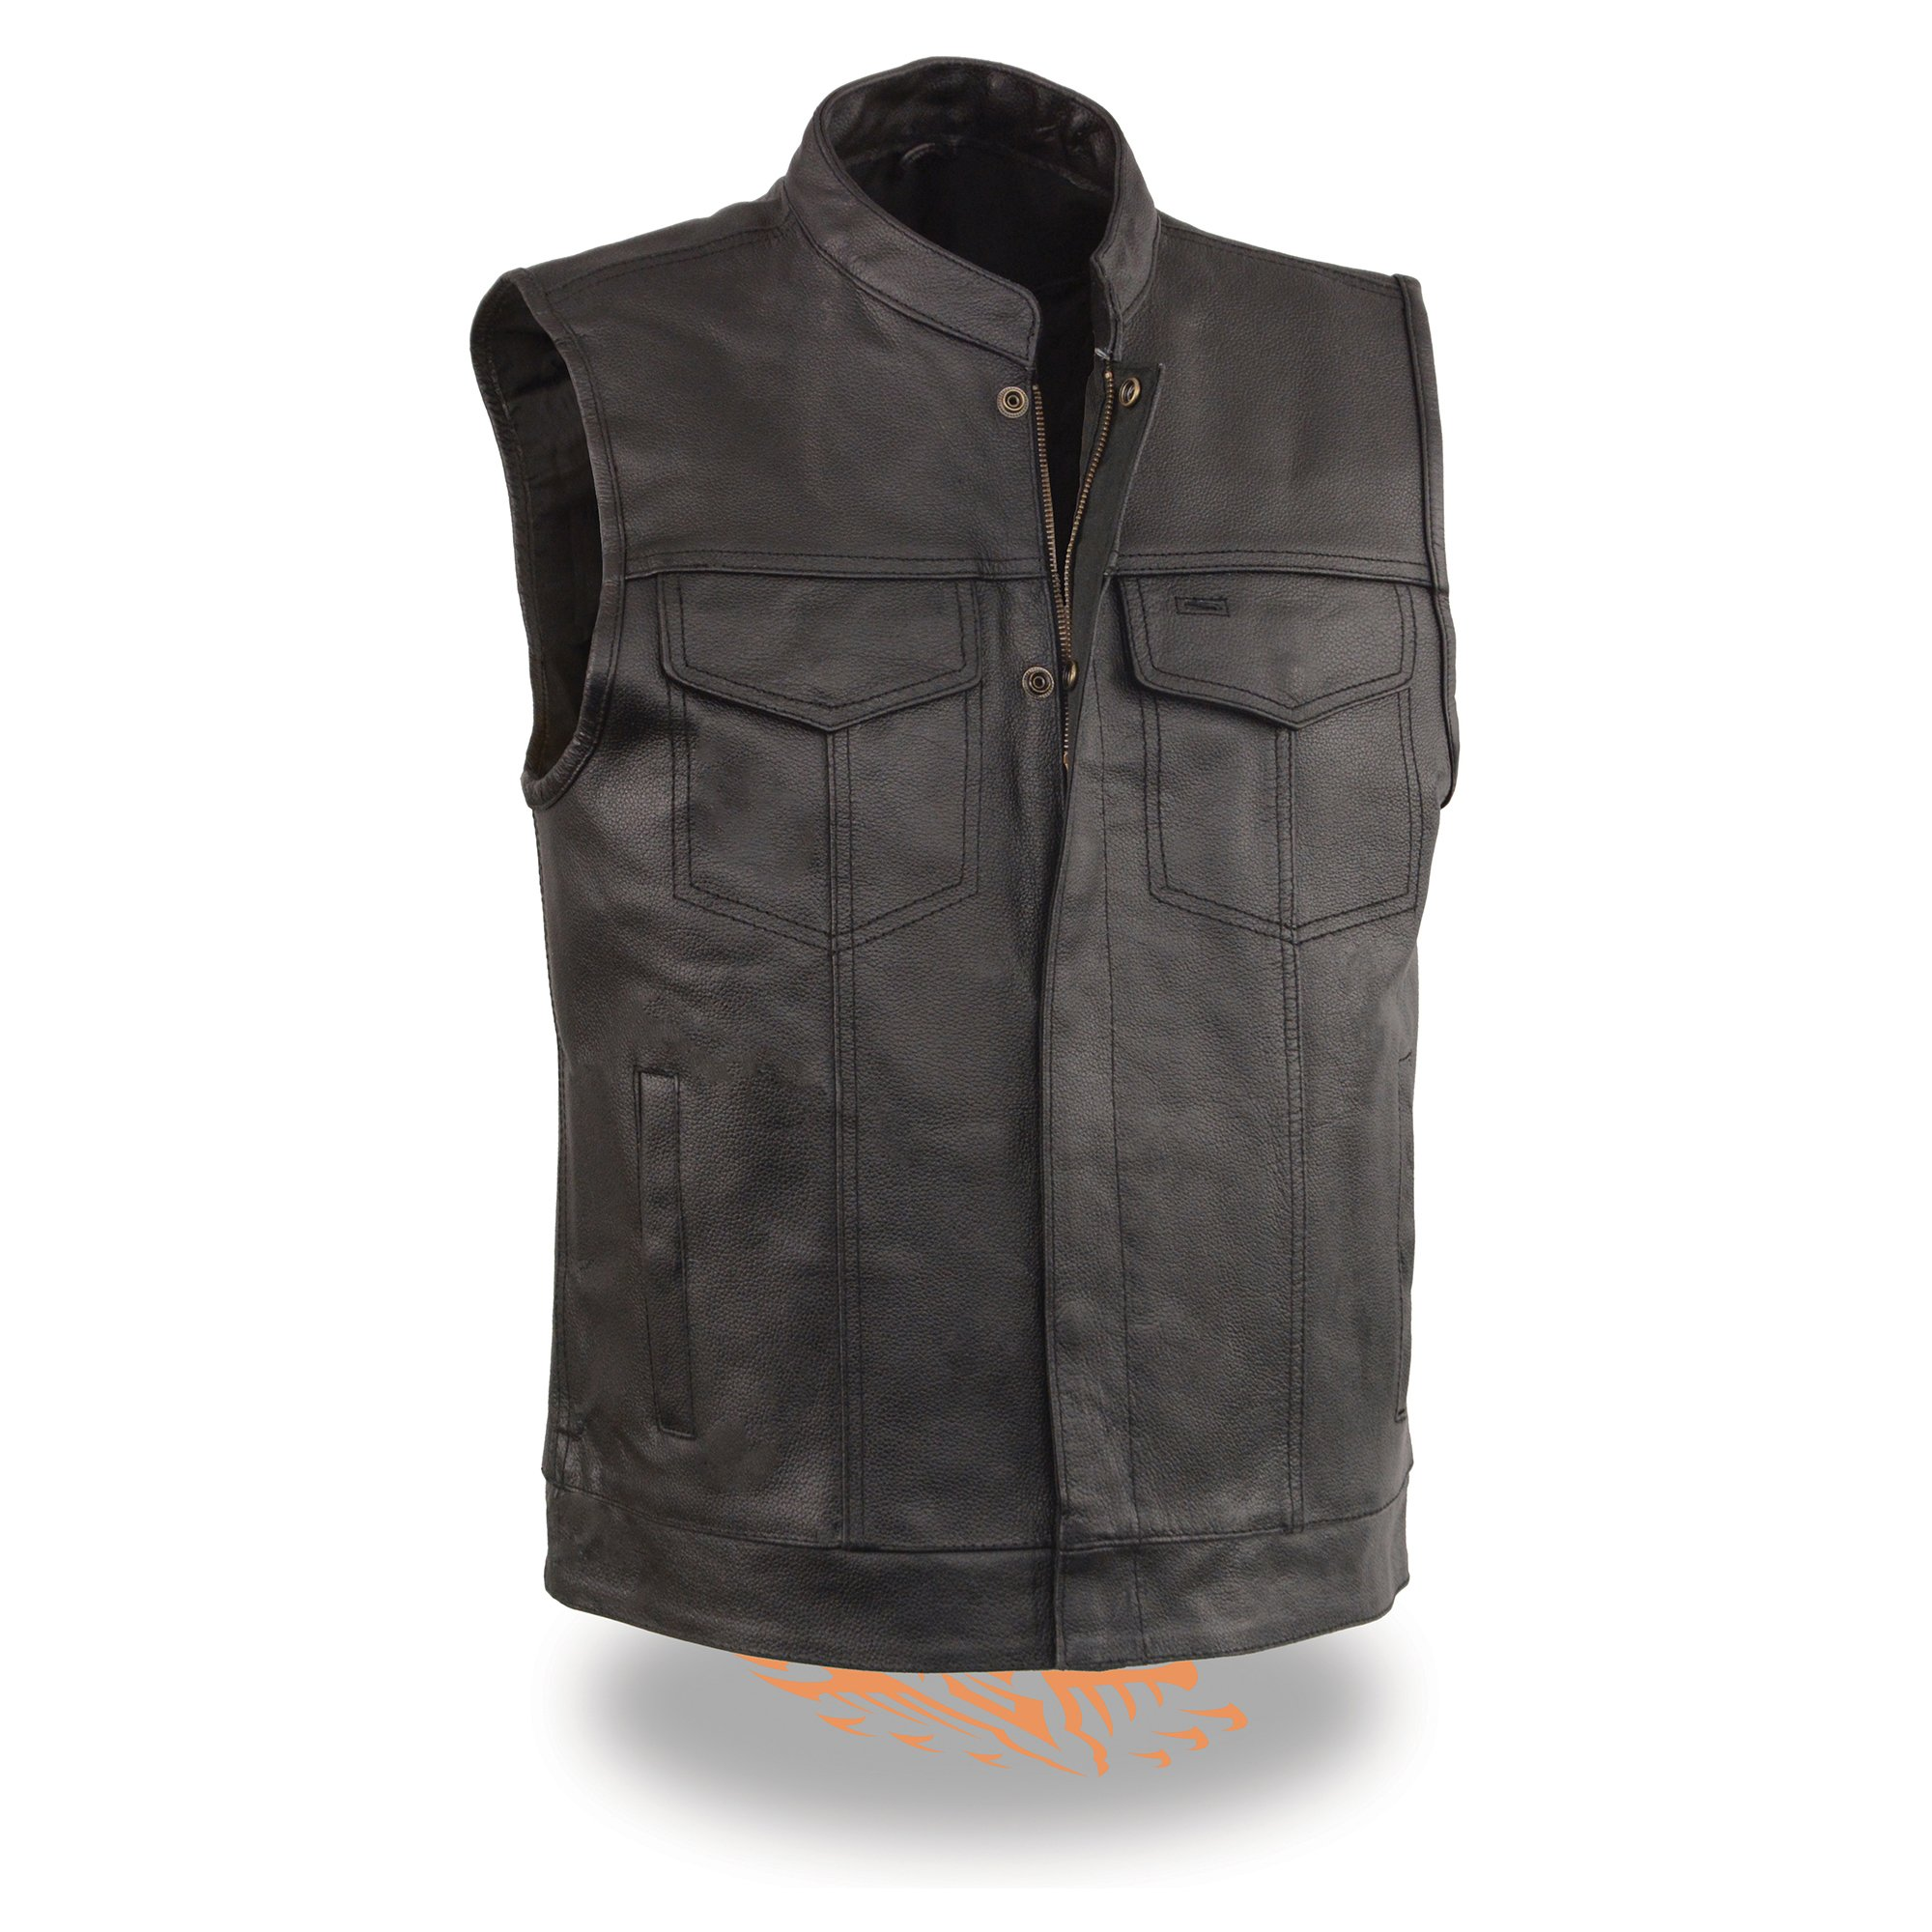 Men's Leather Motorcycle Vest Zipper & Snap Closure w/ 2 Inside Gun Pockets & Single Panel Back (5X - Big) by EVENT LEATHER